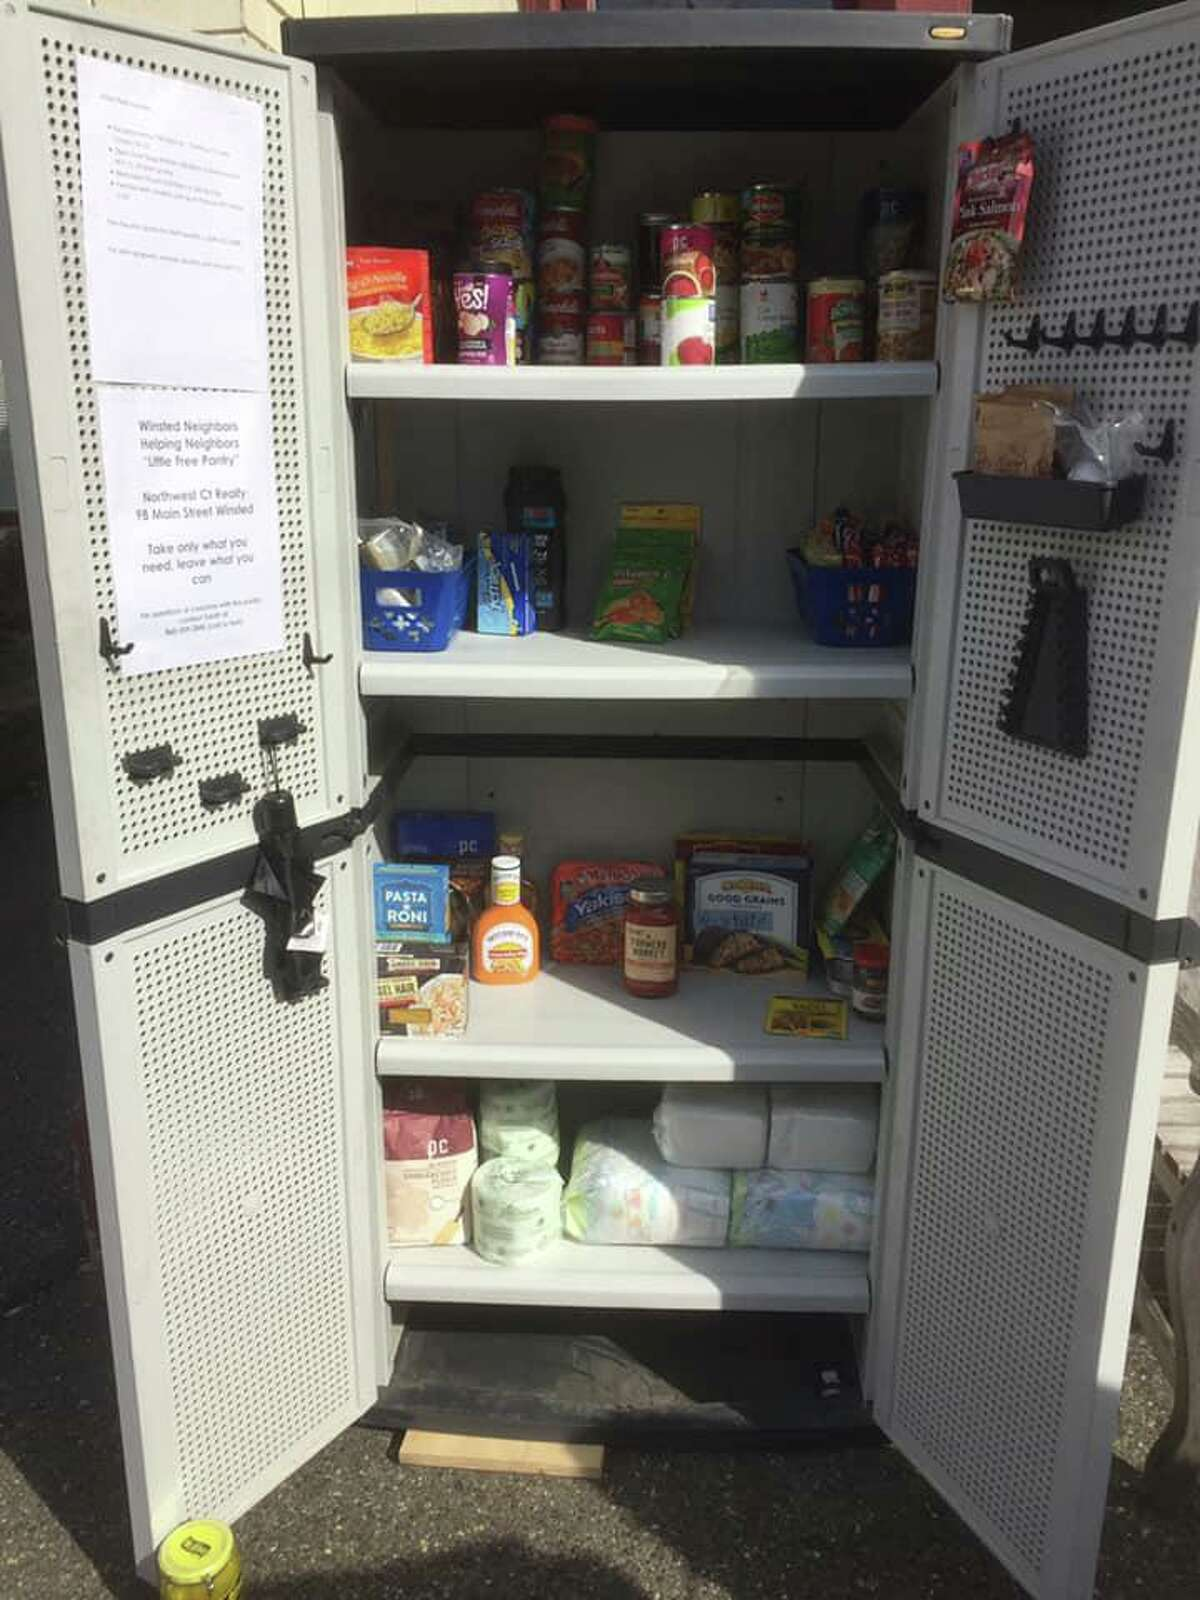 Winsted Neighbors Helping Neighbors has a small food pantry set up outside Northwest Realty on Main Street, where people can take food if they need it and make donations. The group, overseen by founder and resident Sarah Toomey, is making sure people have food during the coronavirus crisis.